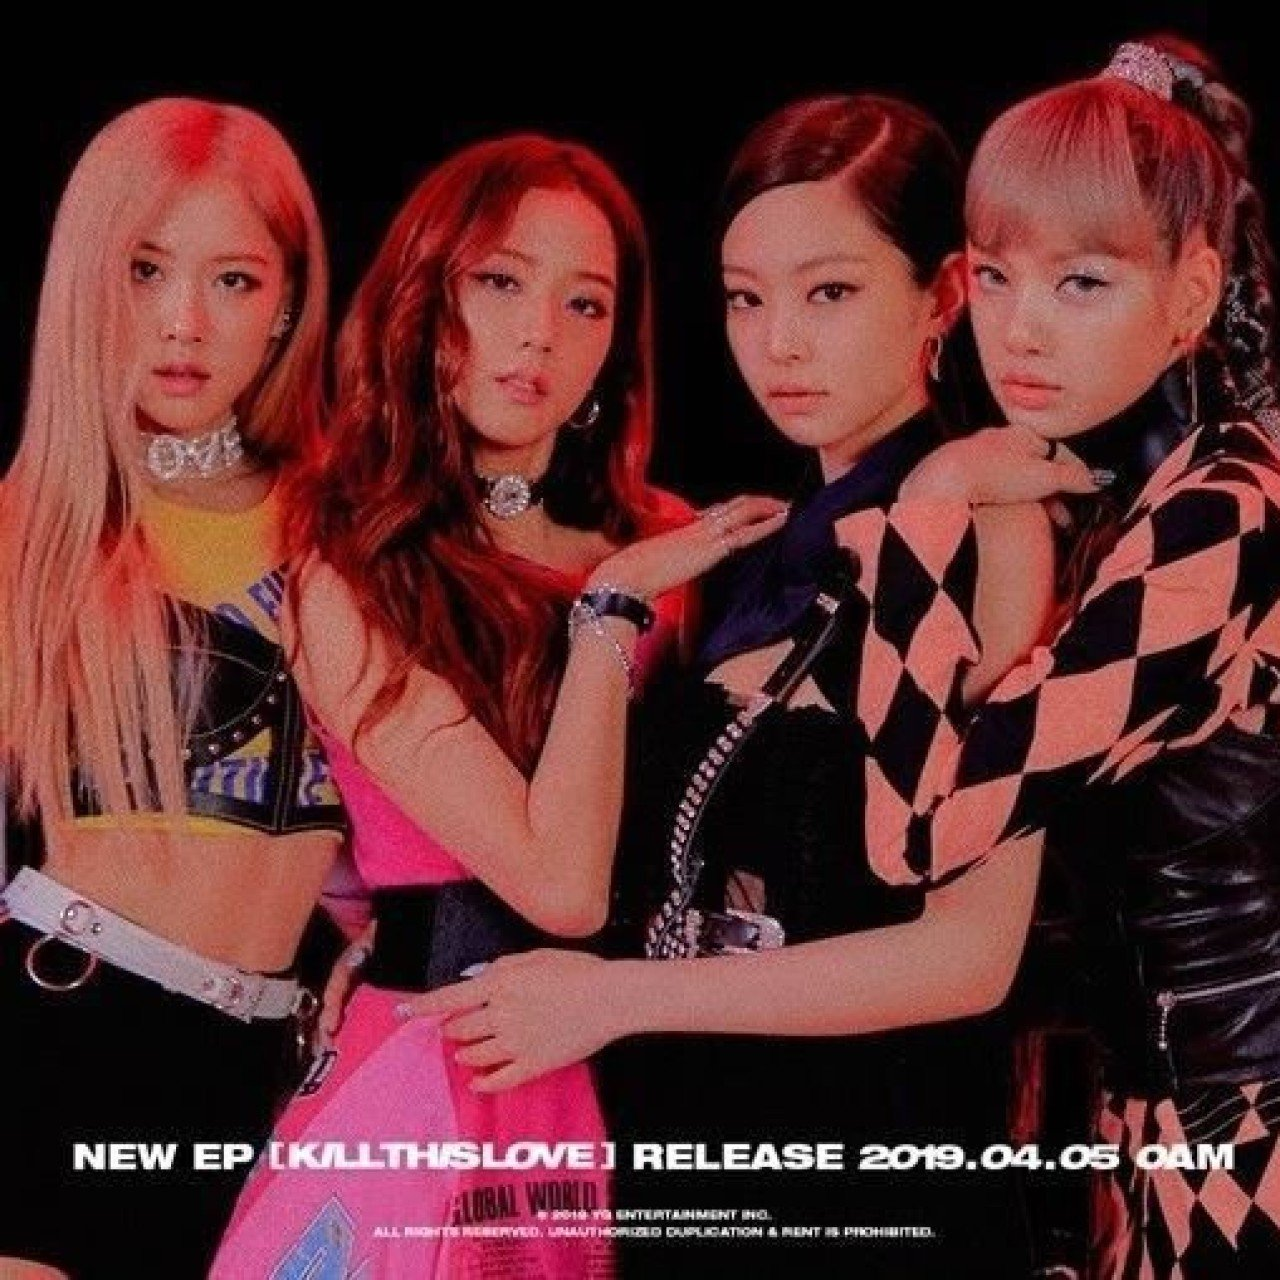 K-pop band BLACKPINK set record for fastest music video to reach 100